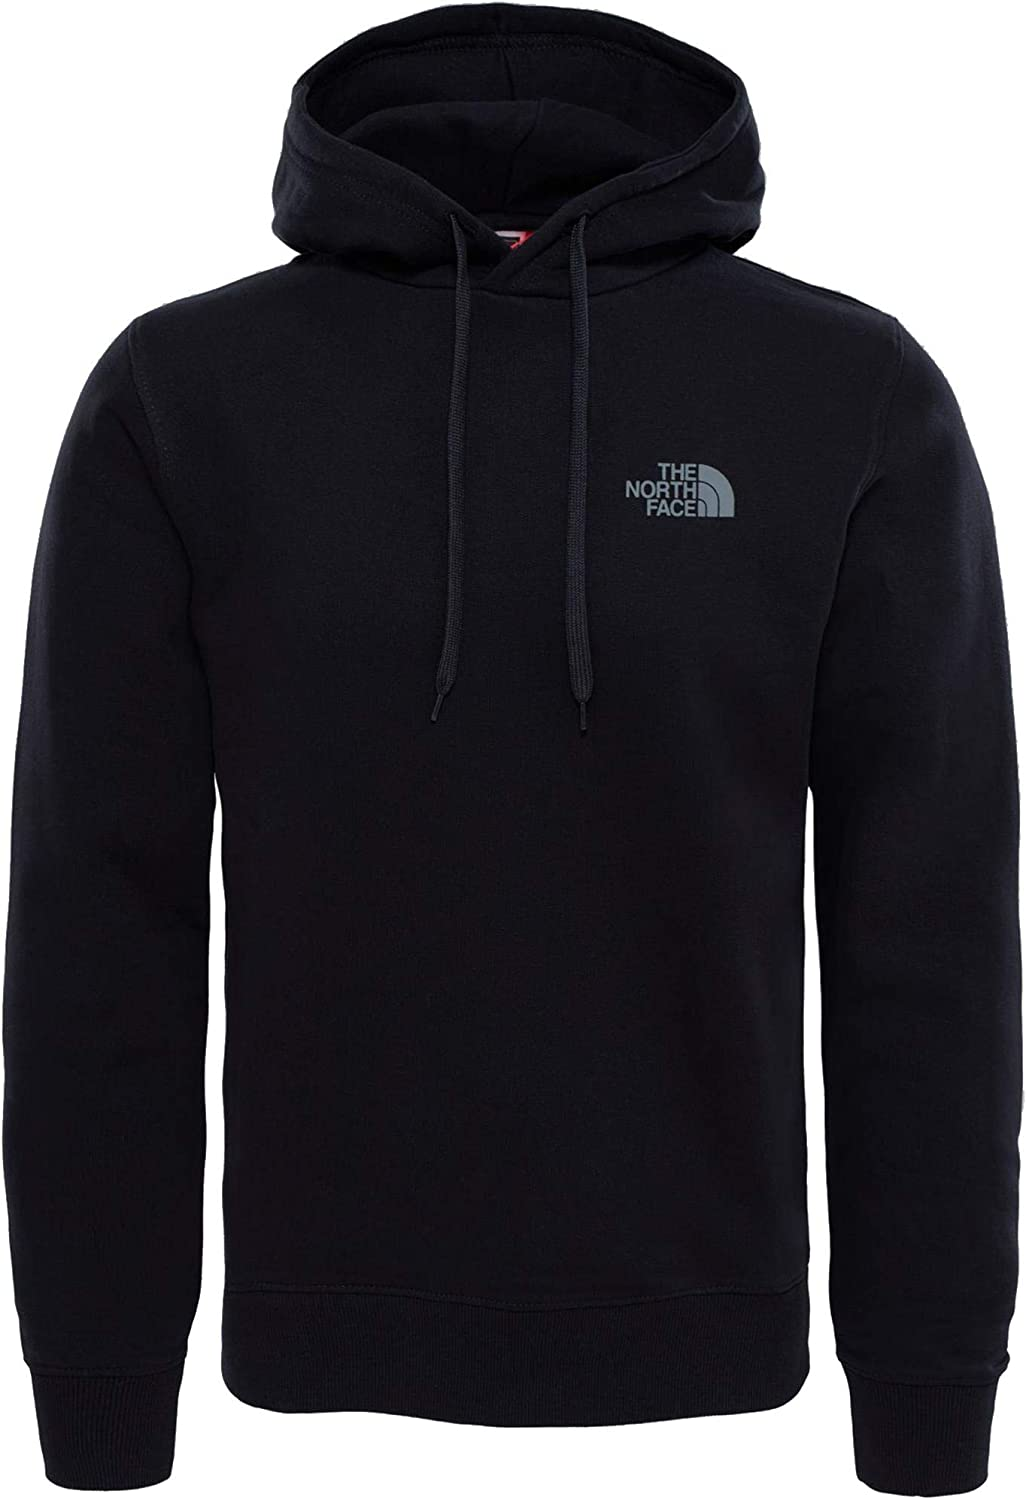 Felpa con Cappuccio Uomo The North Face M Seas Drew Peak HD